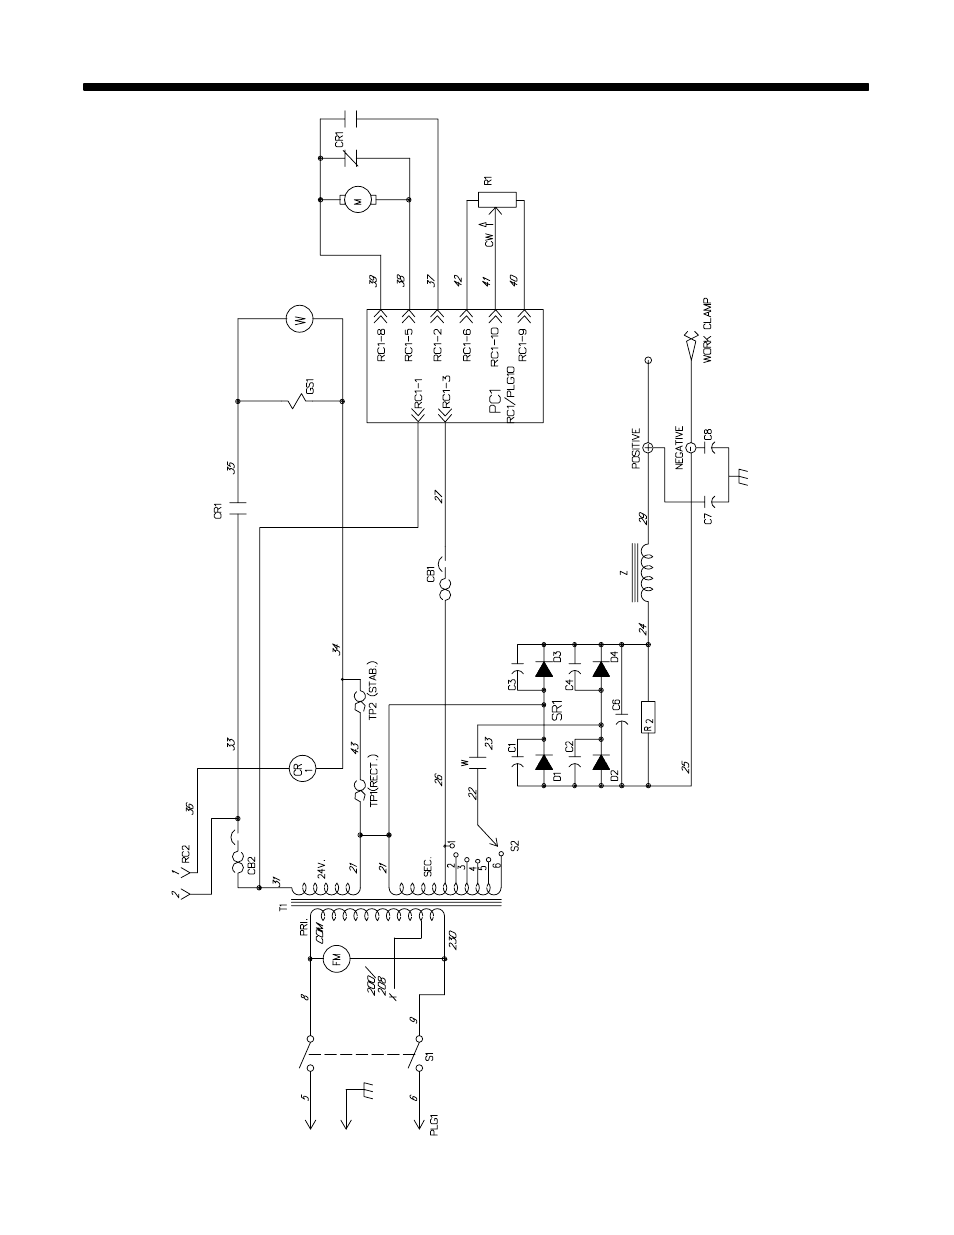 Hobart Welder Wiring Diagram Wiring Diagram And Schematics